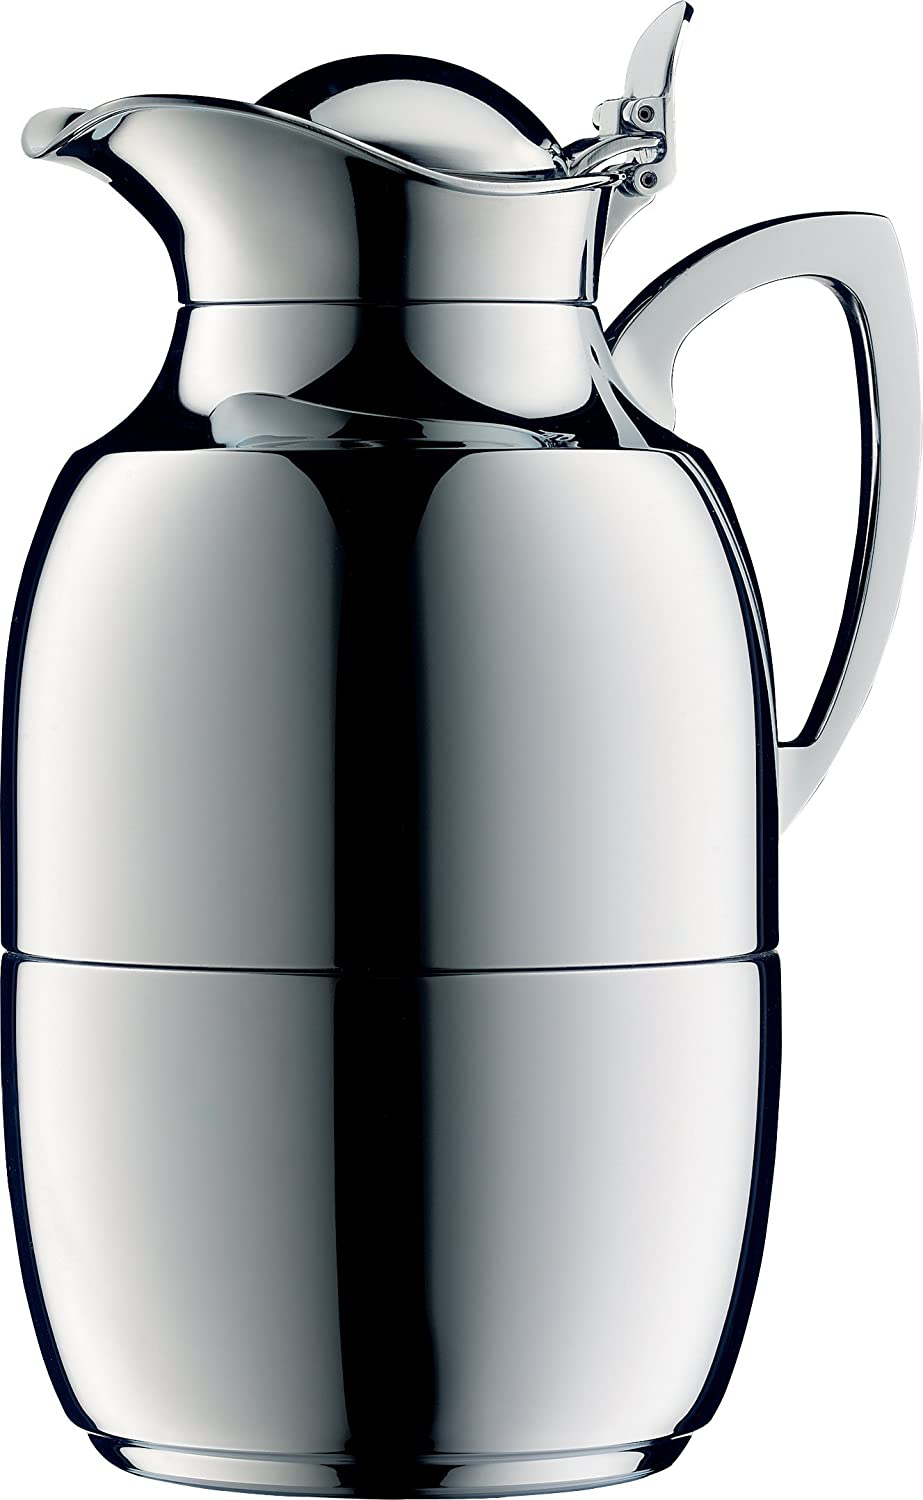 alfi Juwel Glass Vacuum Chrome Plated Brass Thermal Carafe for Hot and Cold Beverages, 1.0 L, Chrome 71qvHOfGw9LSL1500_